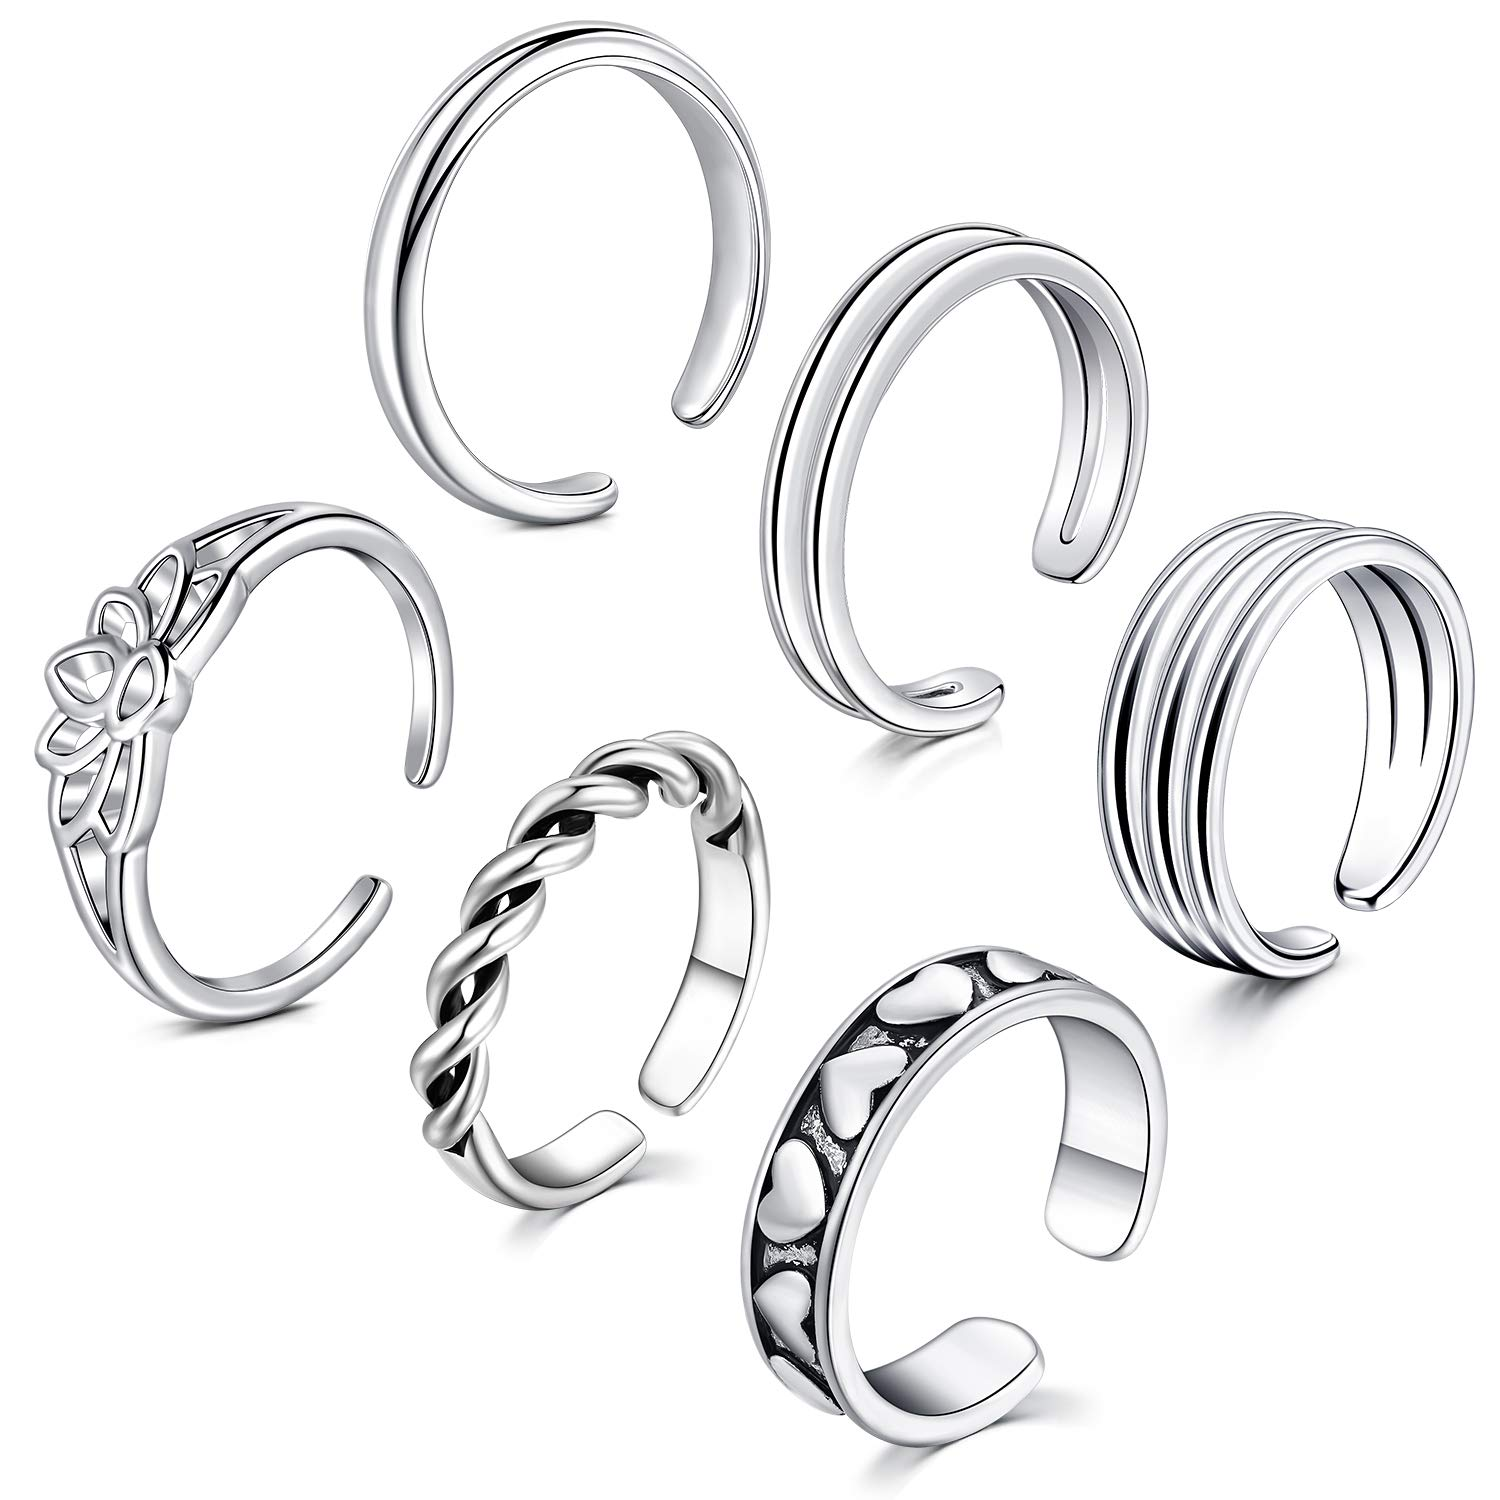 LAURITAMI Stackable Toe Ring Pack Moon CZ Cubic Zirconia Adjustable Band Tail Ring for Women Girls